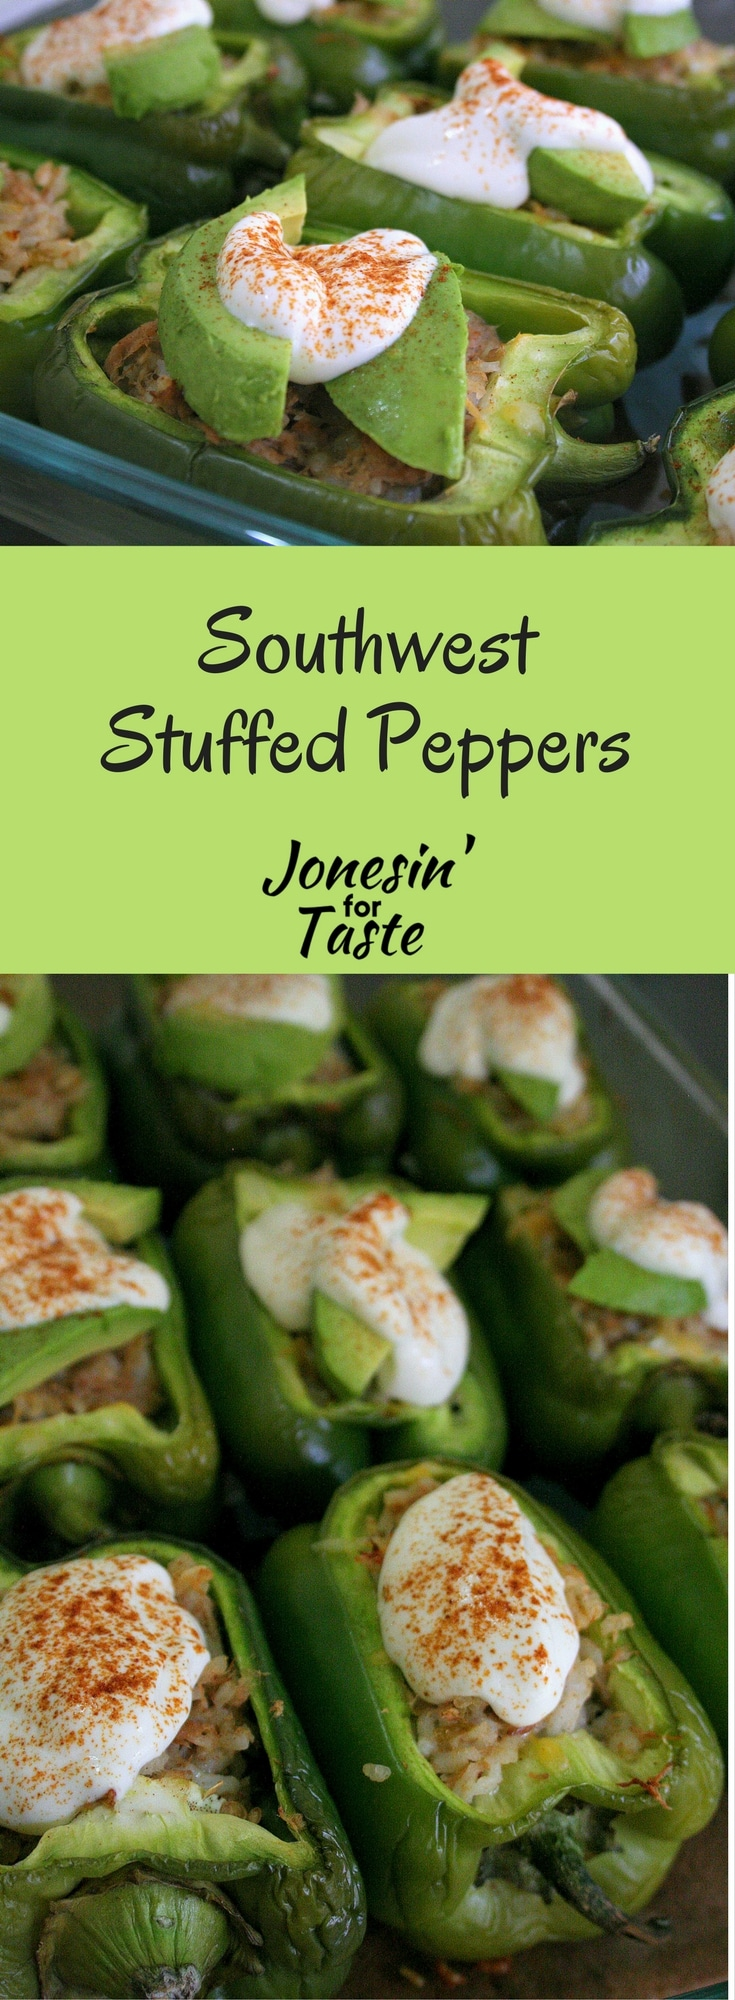 These Southwest Stuffed Peppers are a great super quick 30 minute meal and leftover buster to use up small amounts of leftover meats and rice.